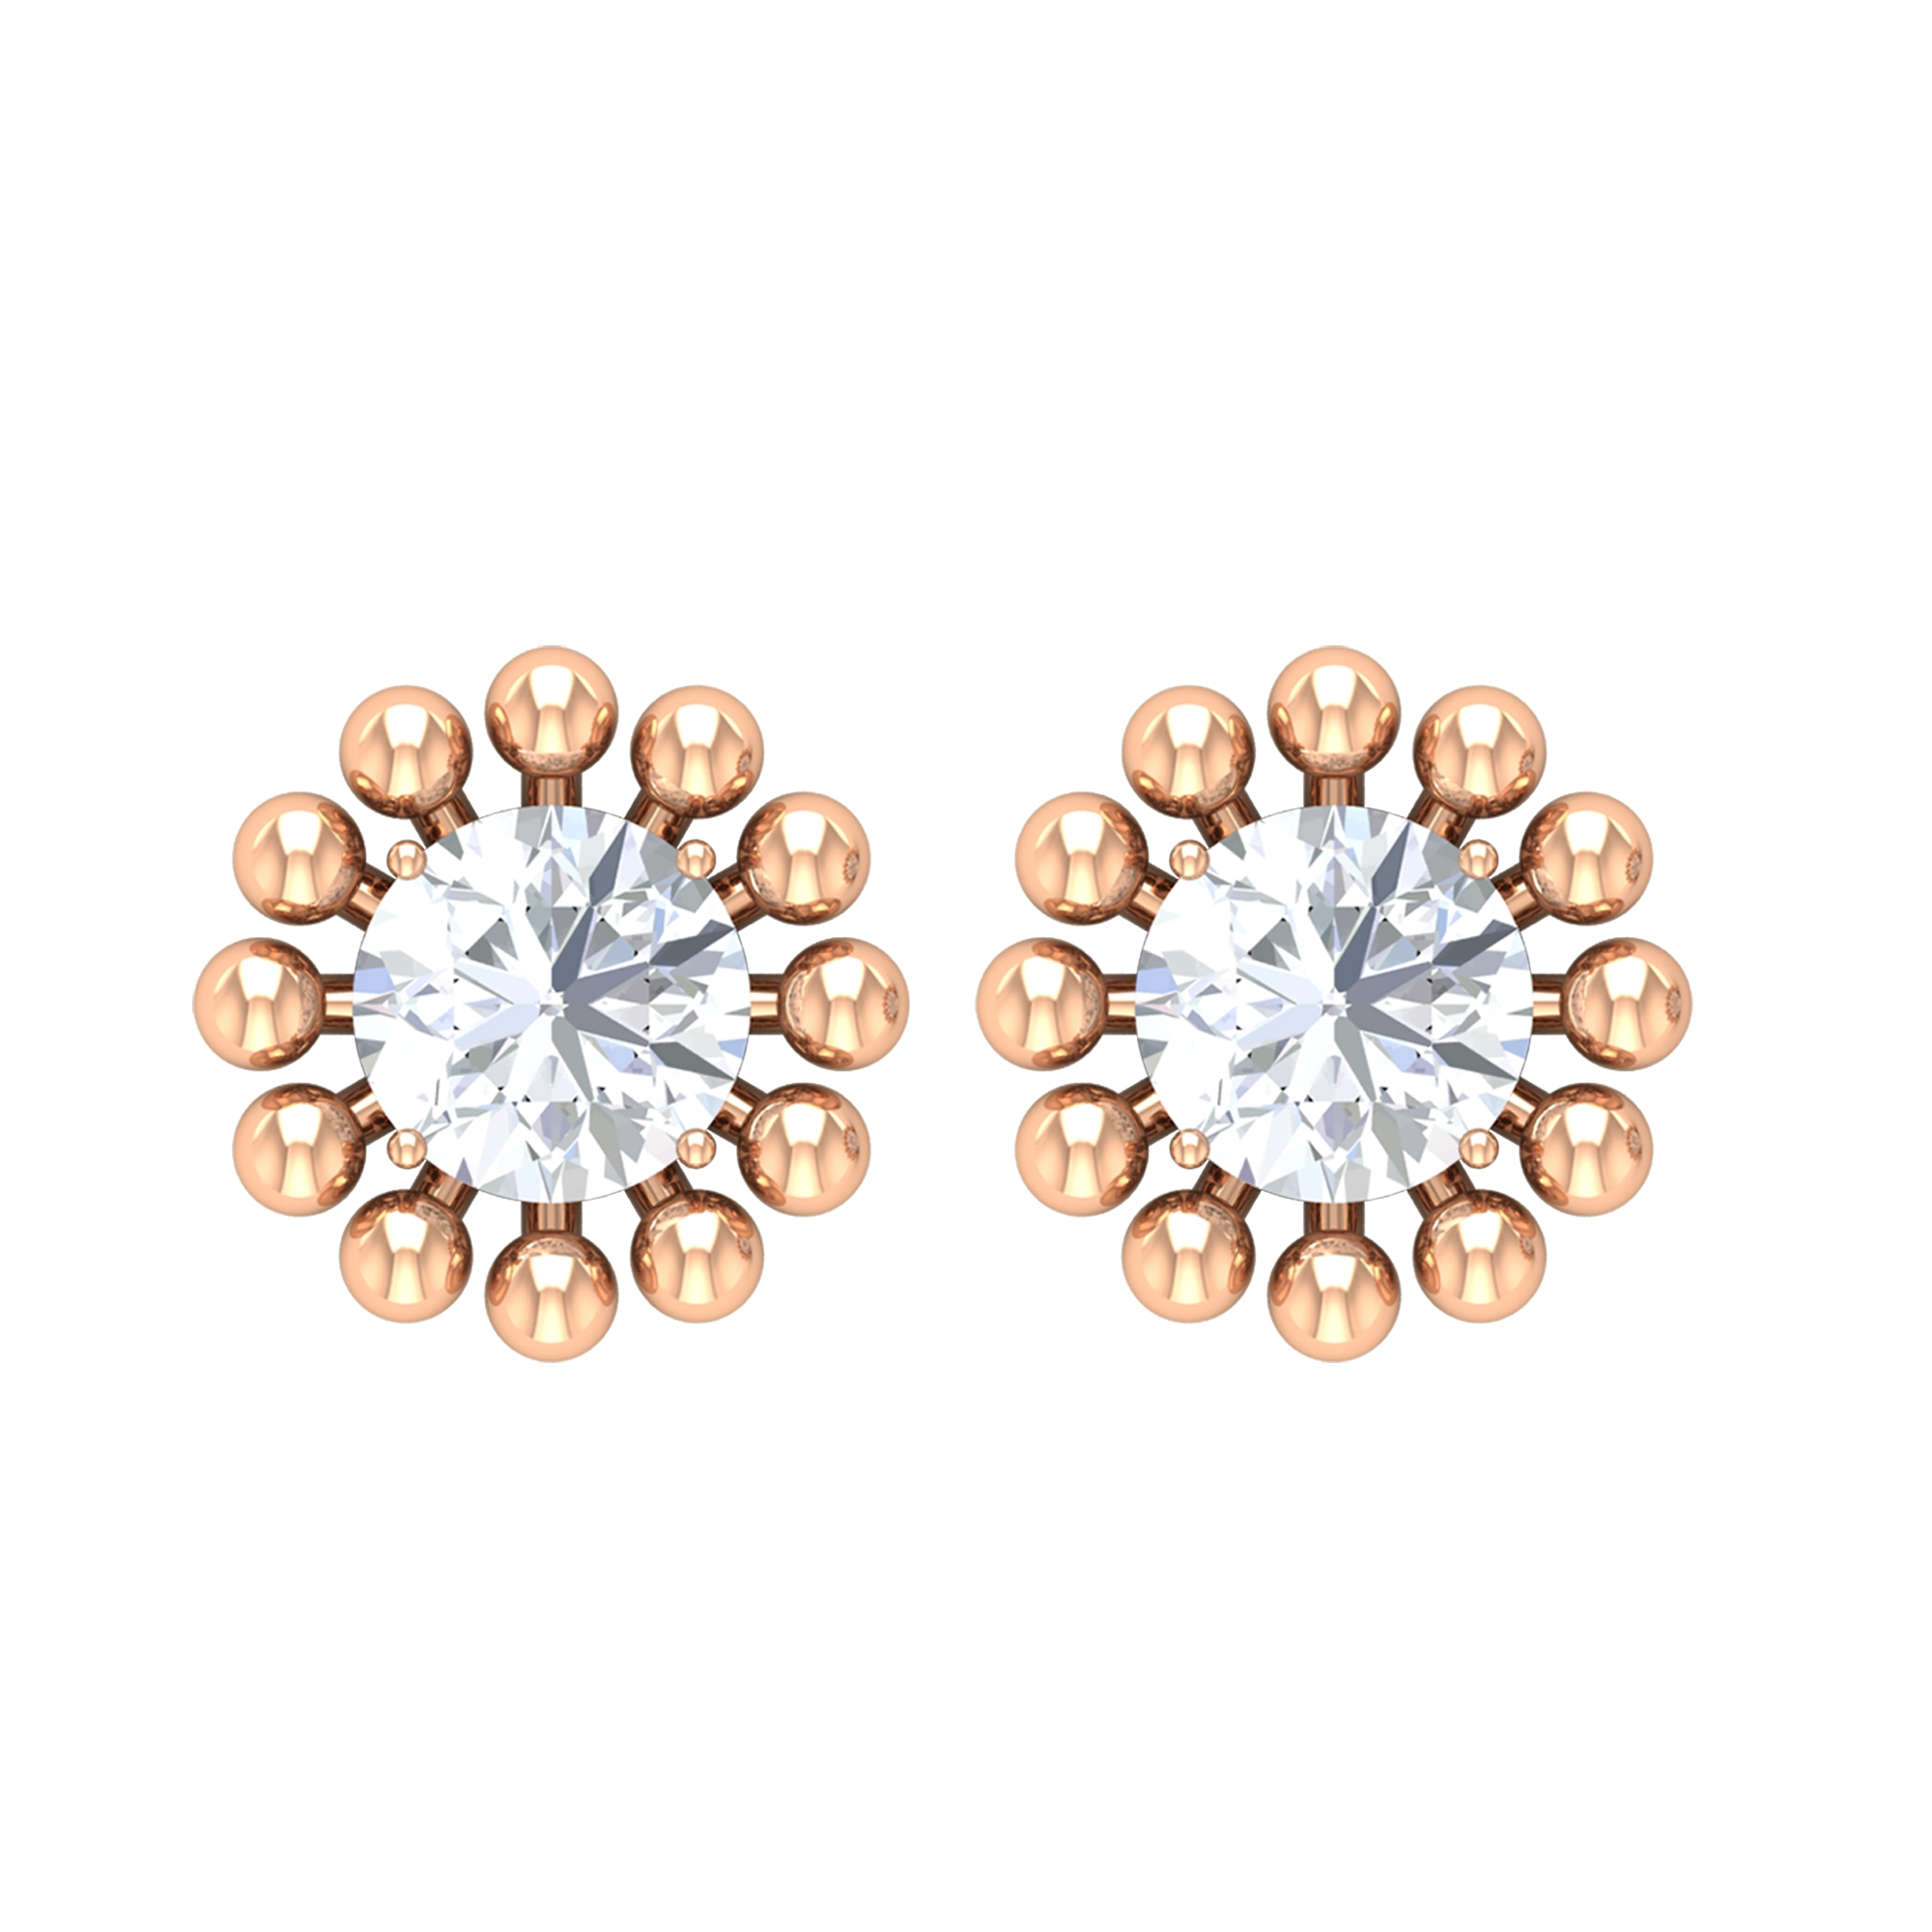 1/2 CT Diamond Solitaire Stud Earrings in Beaded Gold Embellishment